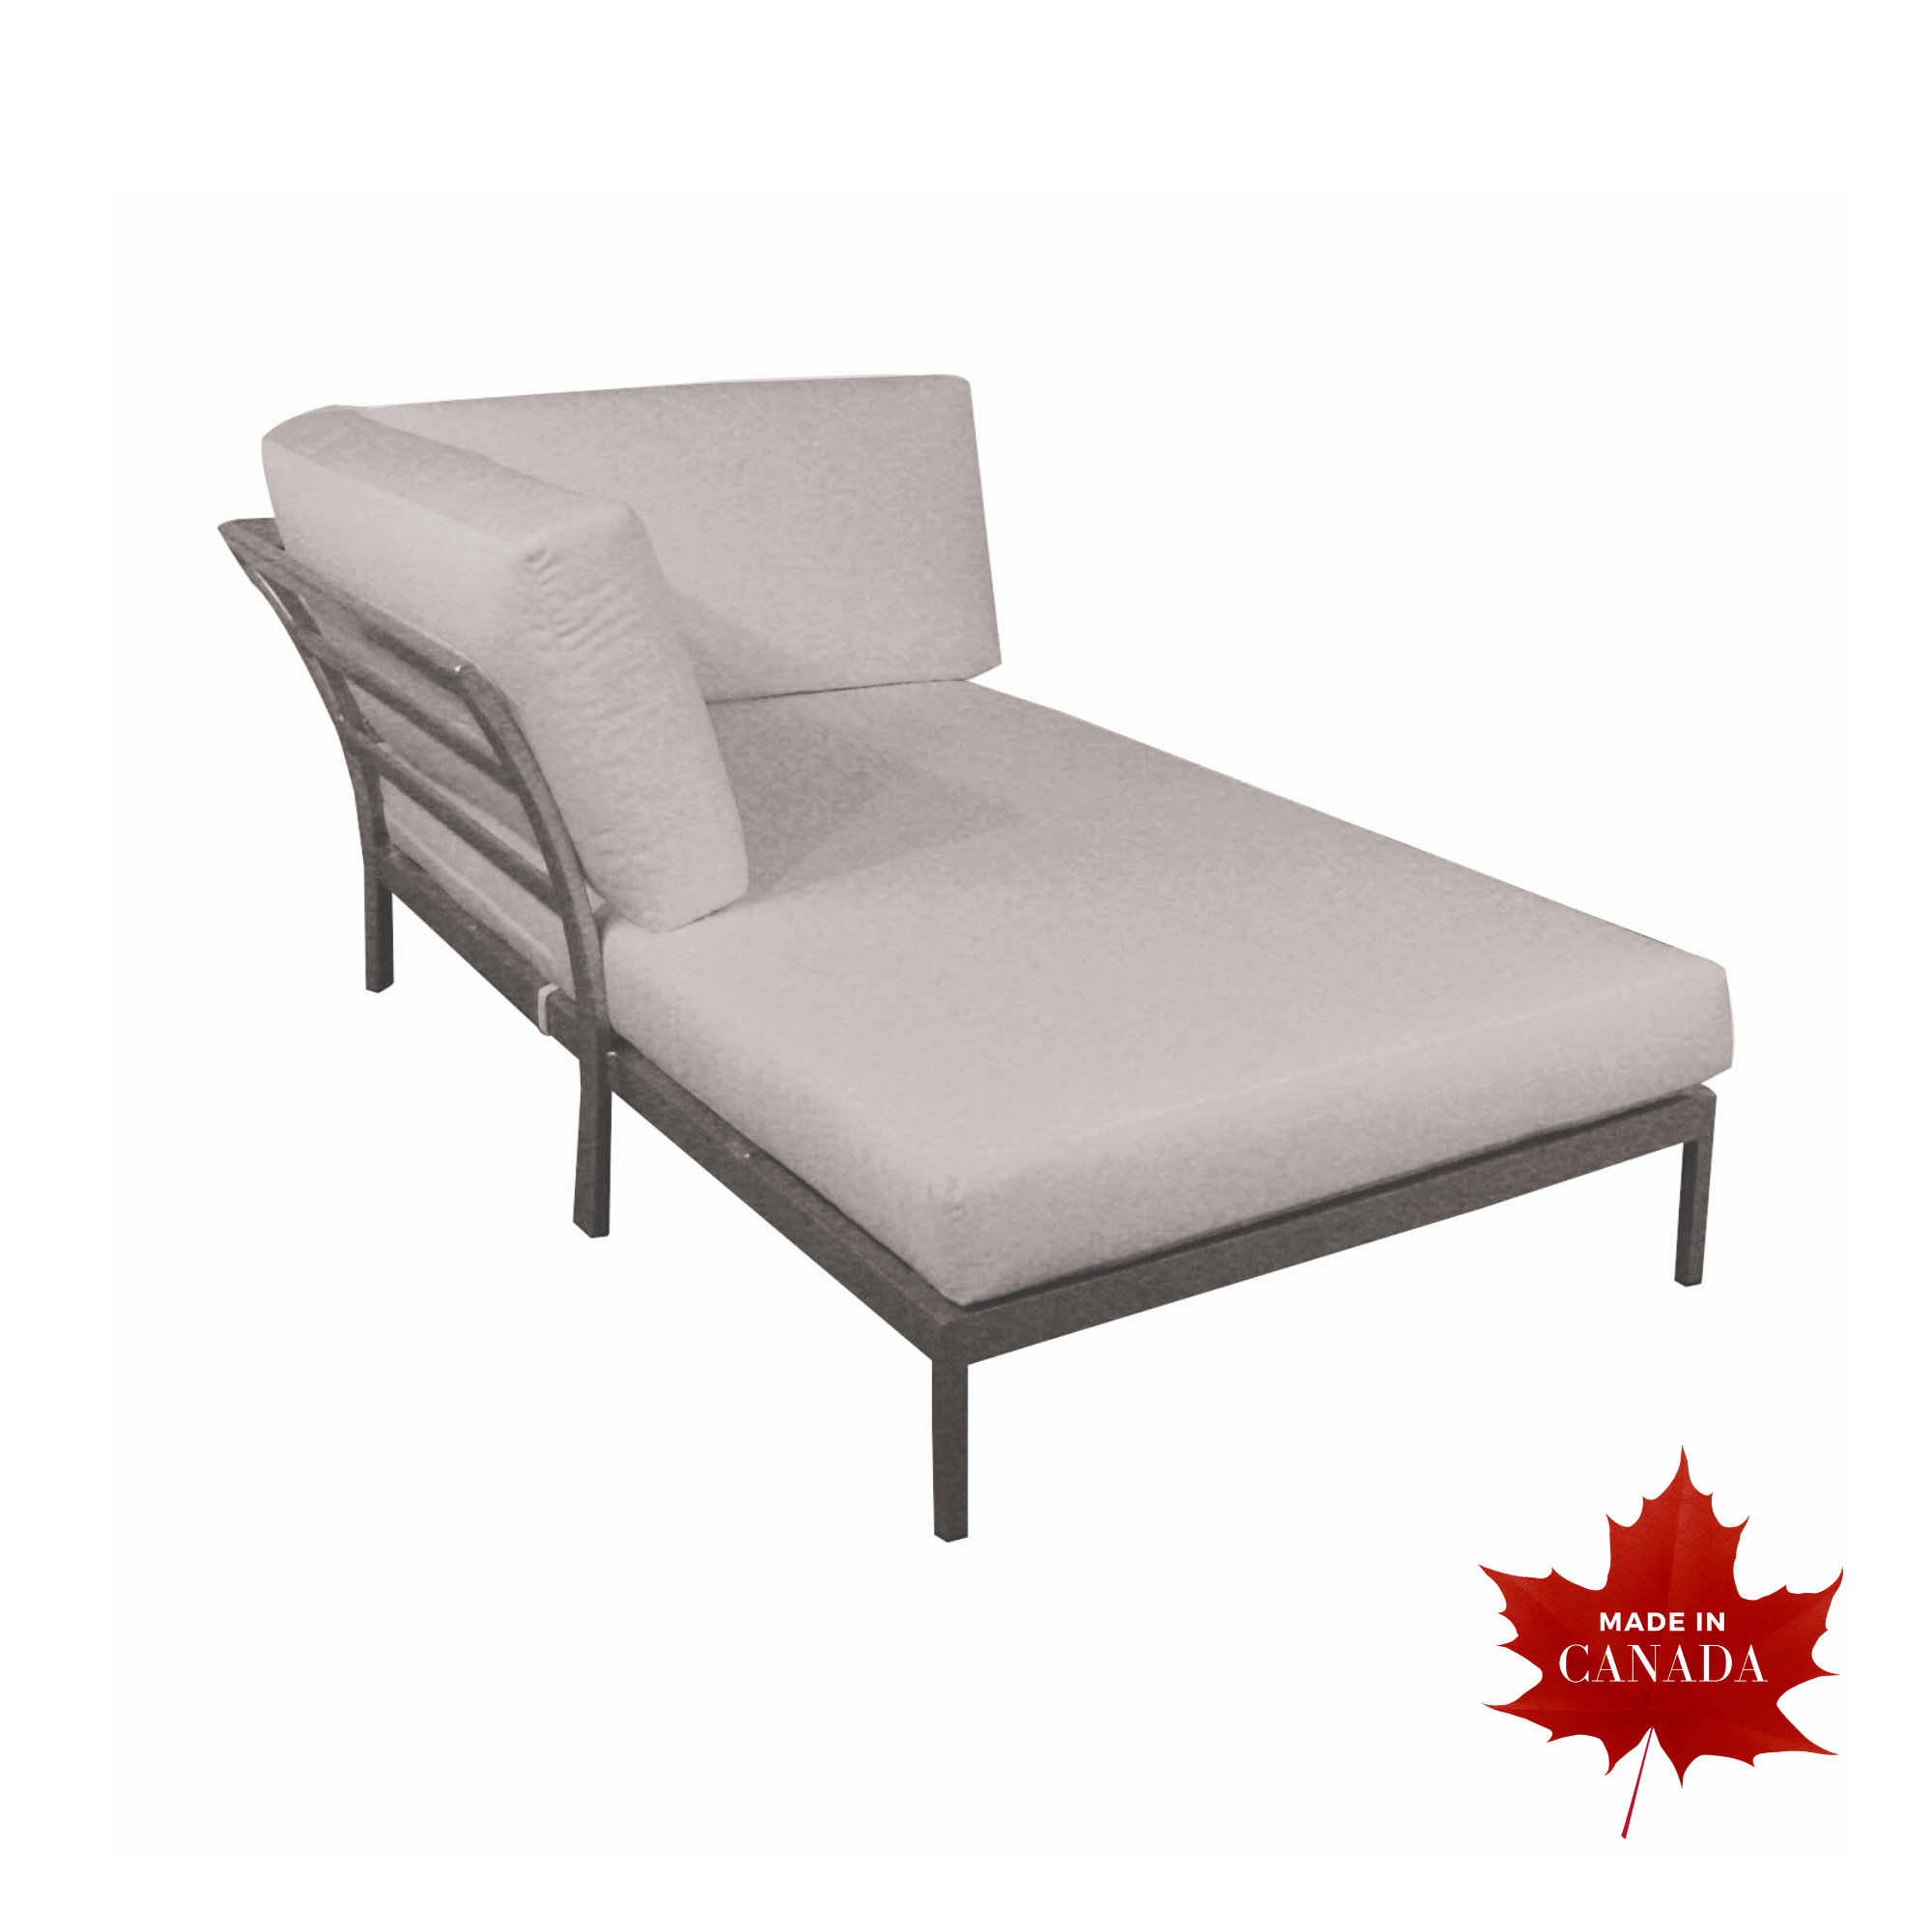 Contempo LAF Chaise